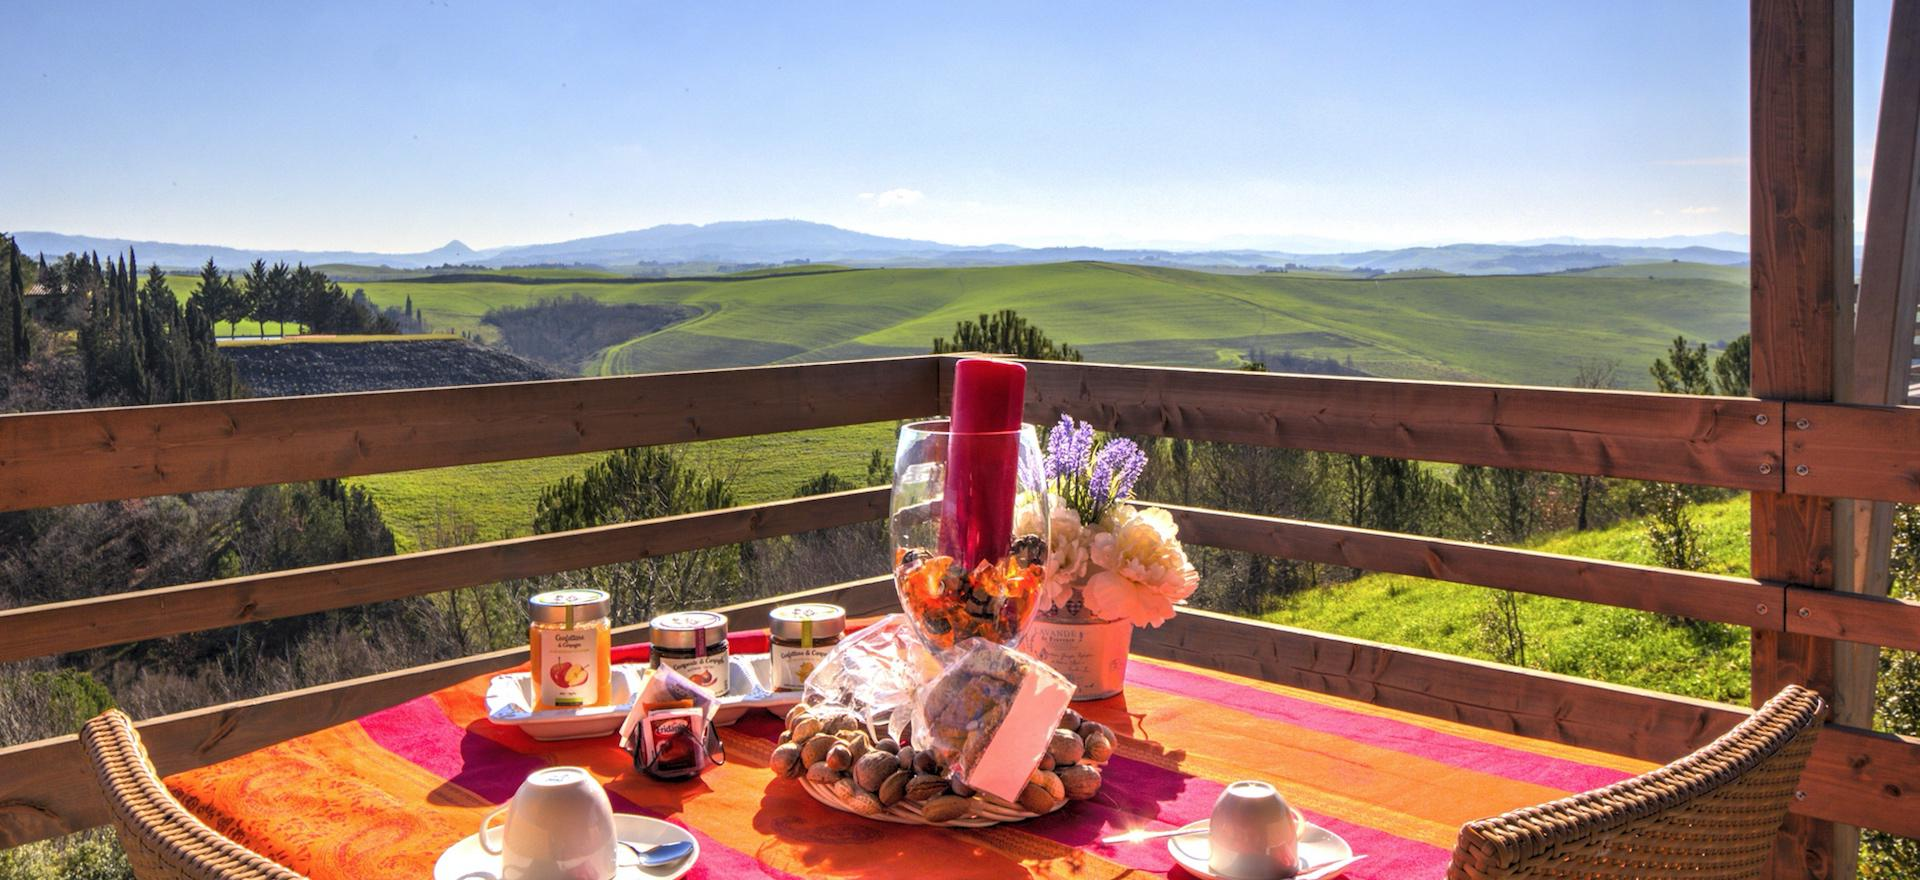 Agriturismo Tuscany Family friendly glamping in Tuscany